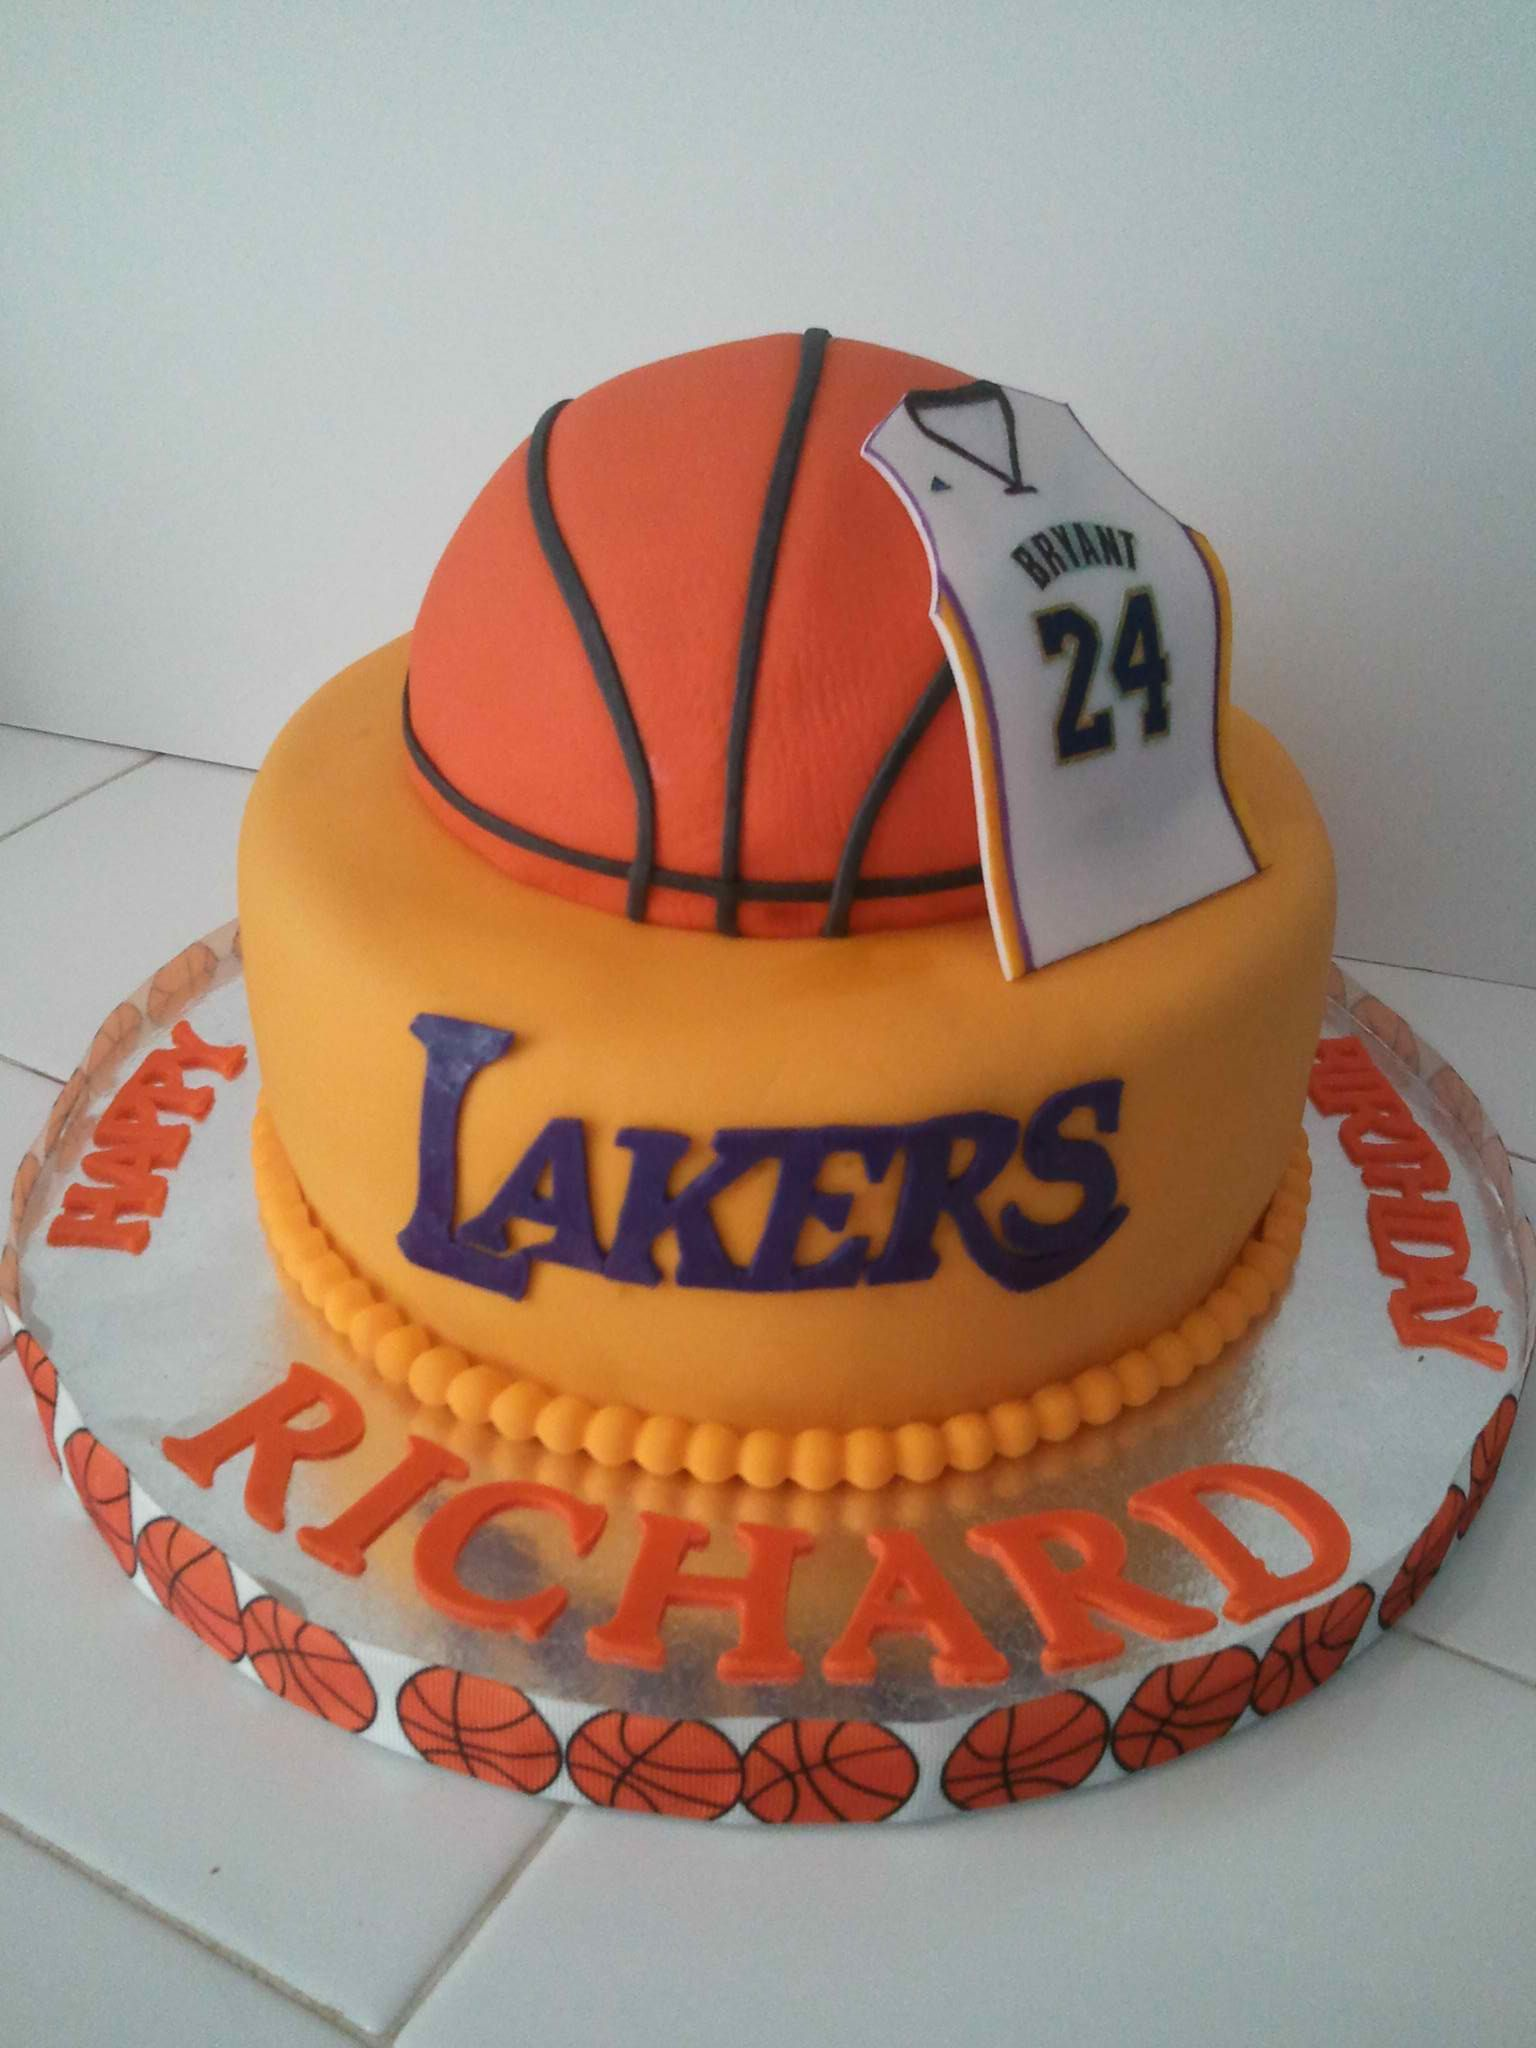 Laker's Cake (With images) Basketball birthday cake